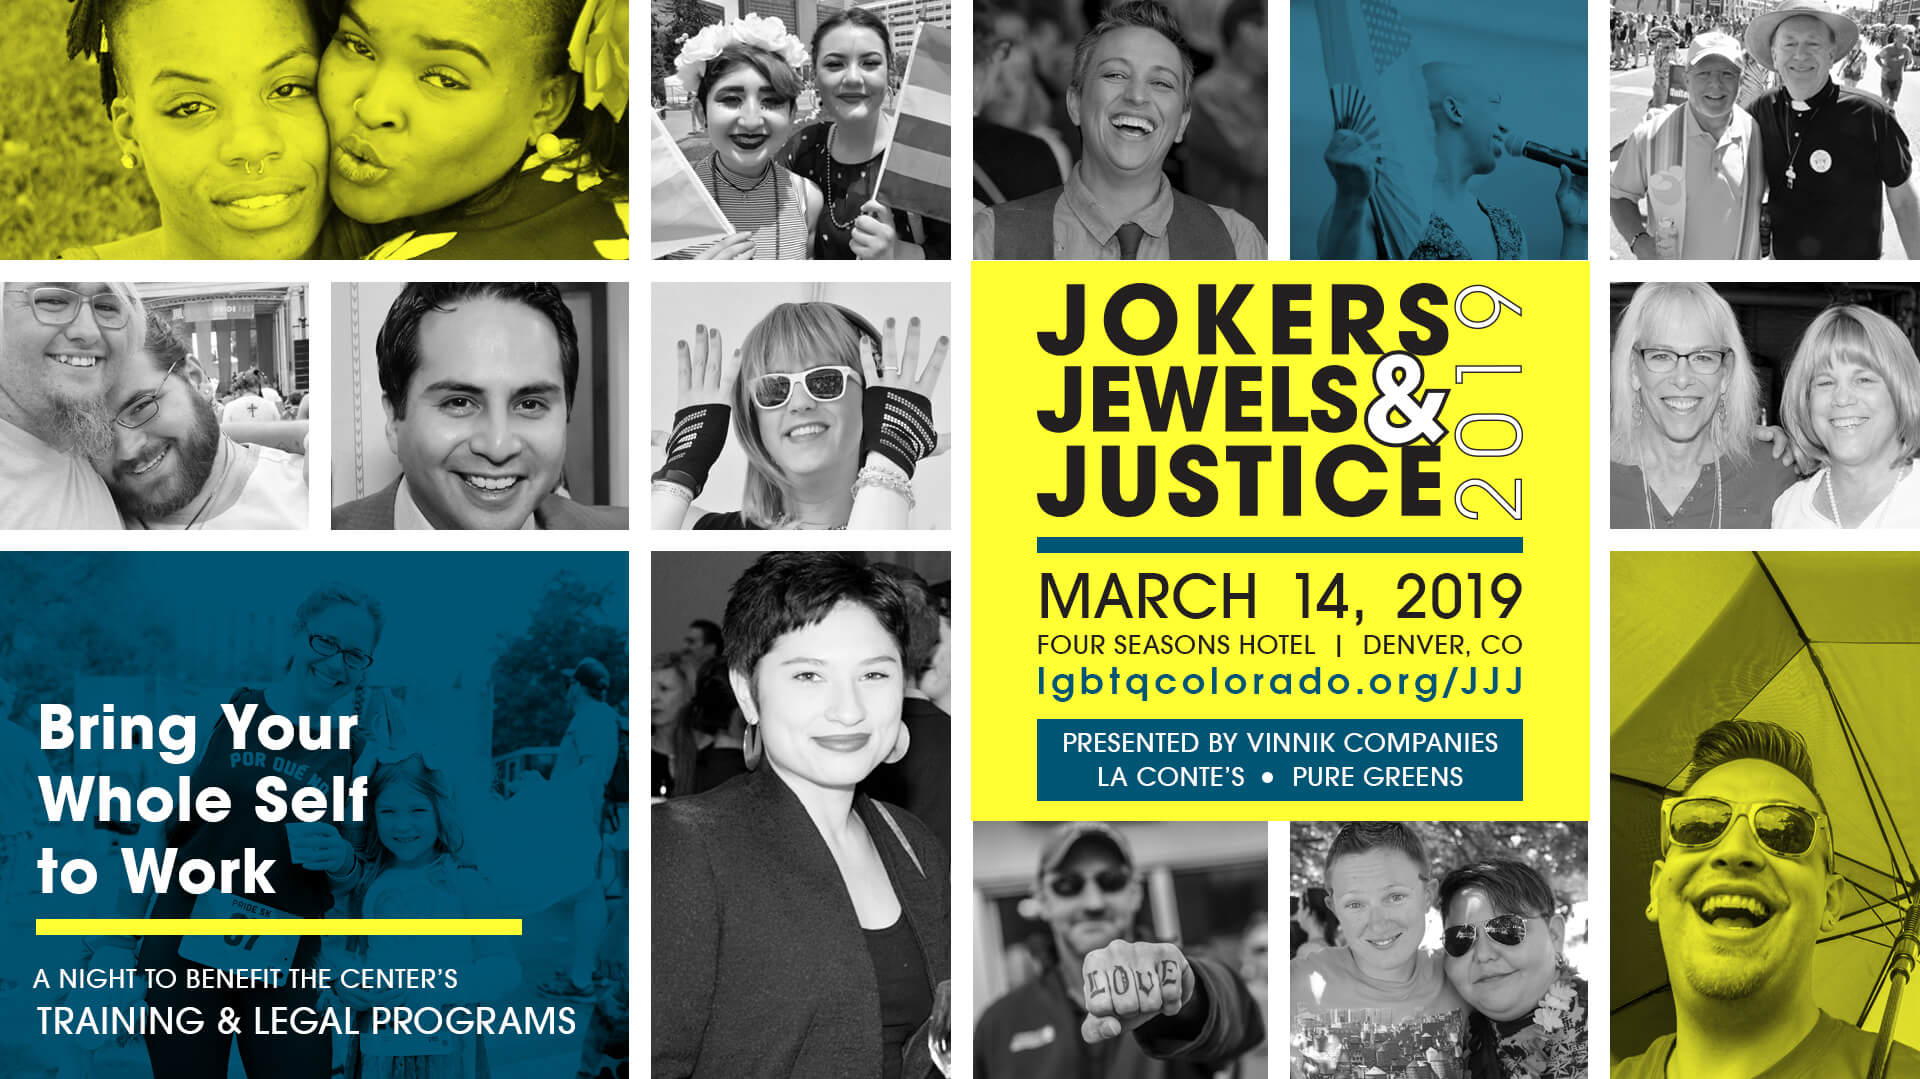 Jokers, Jewels & Justice Presented by Vinnik Companies